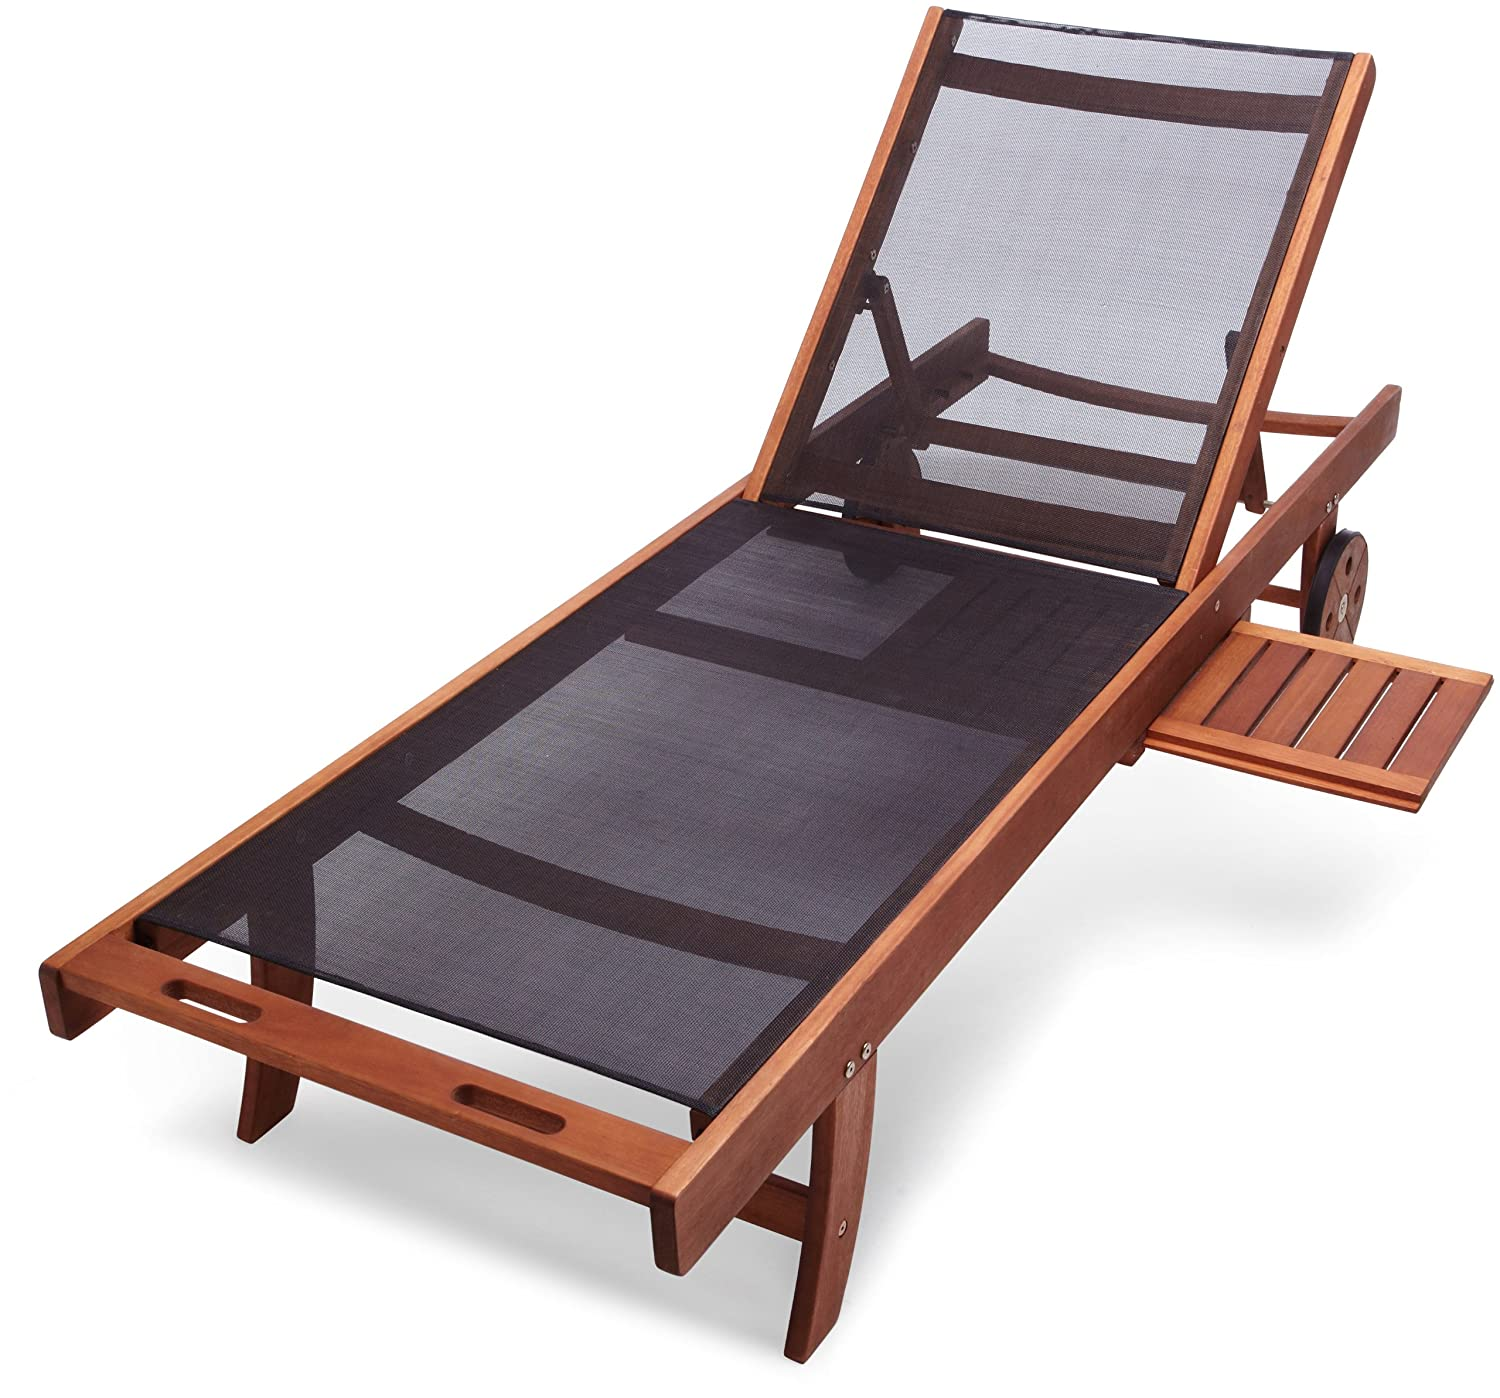 Basics Chaise Lounge Chair 5 Reclining Position Eucalyptus Wood Textilene Fabric